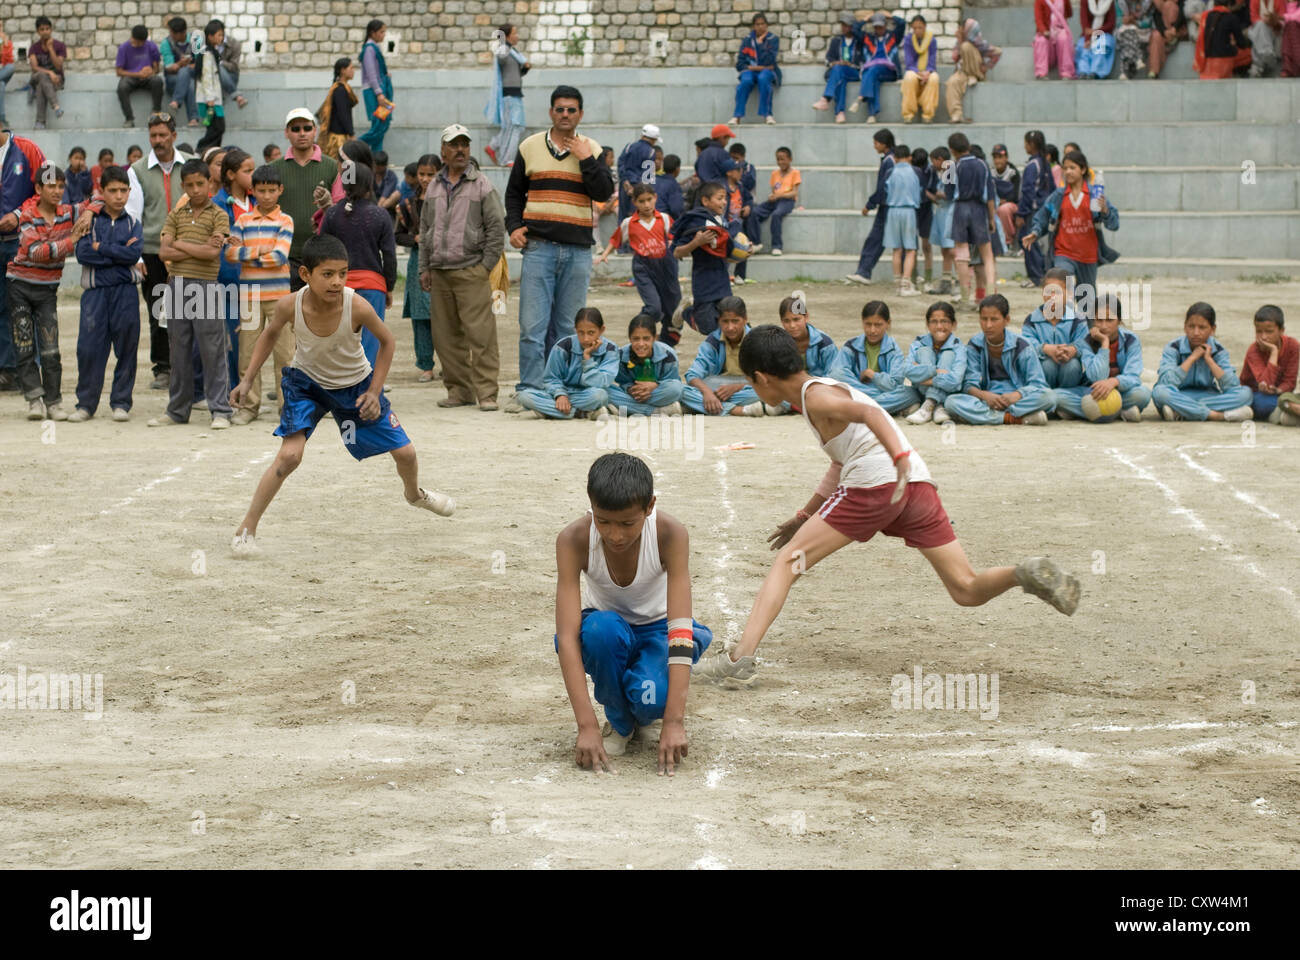 Boys from different schools compete at 'Kho Kho' in Keylong, North India - Stock Image